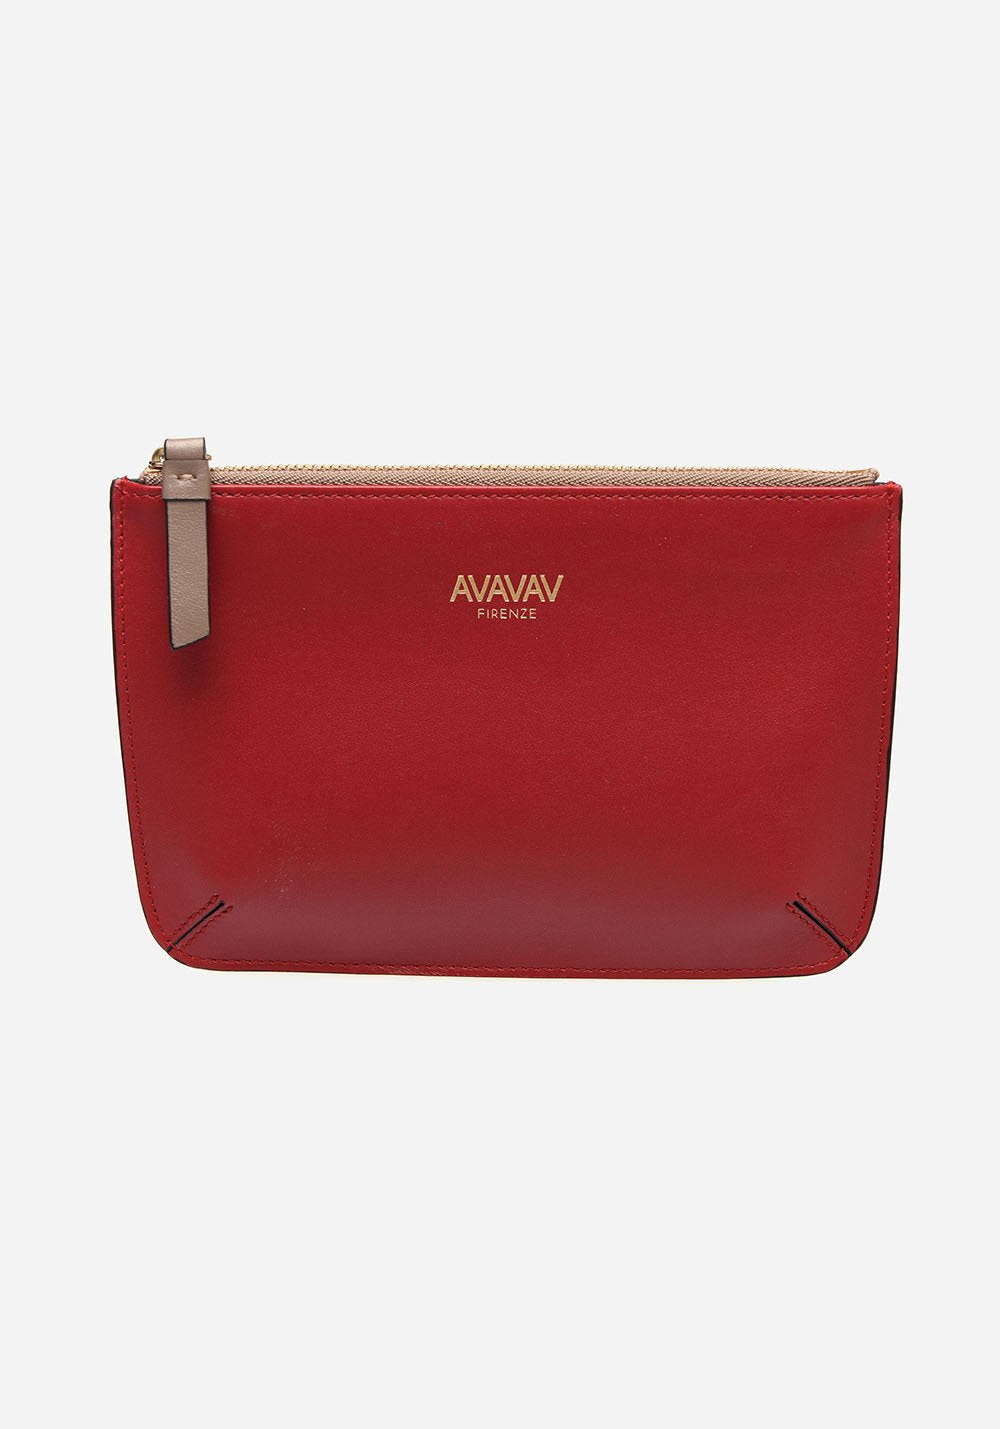 Small Pouch in Red - AVAVAV-Firenze